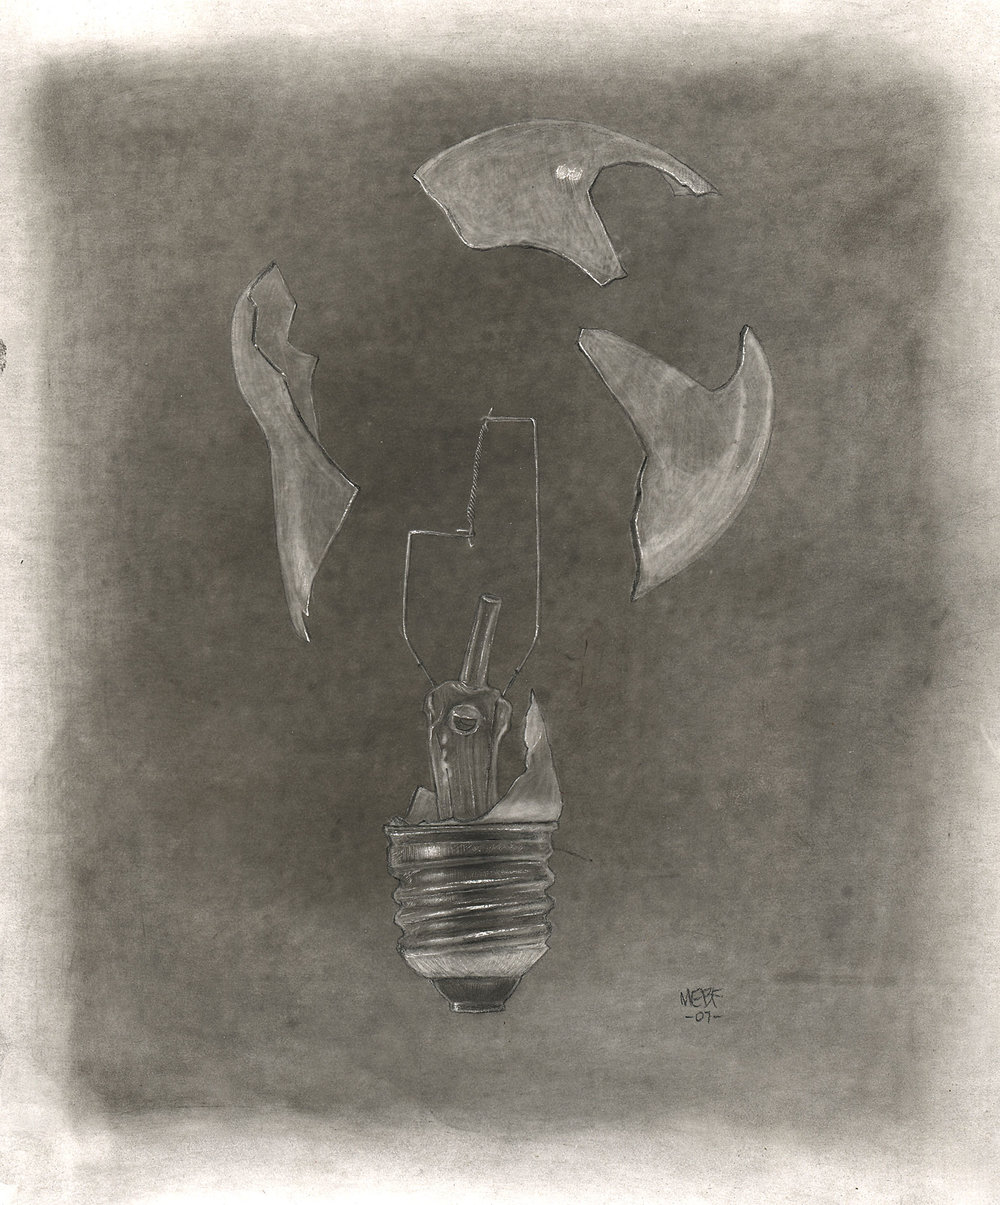 lightbulb001.jpg